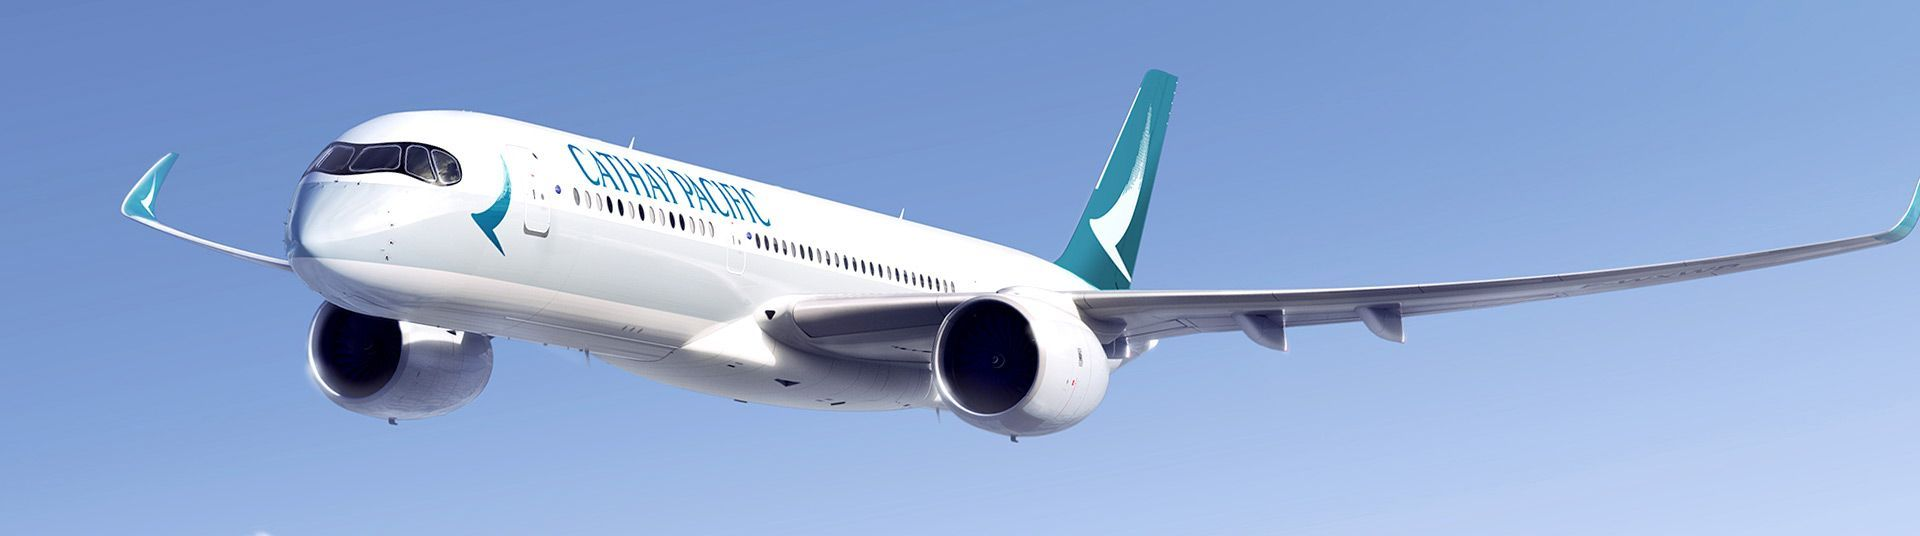 cathay pacific service client